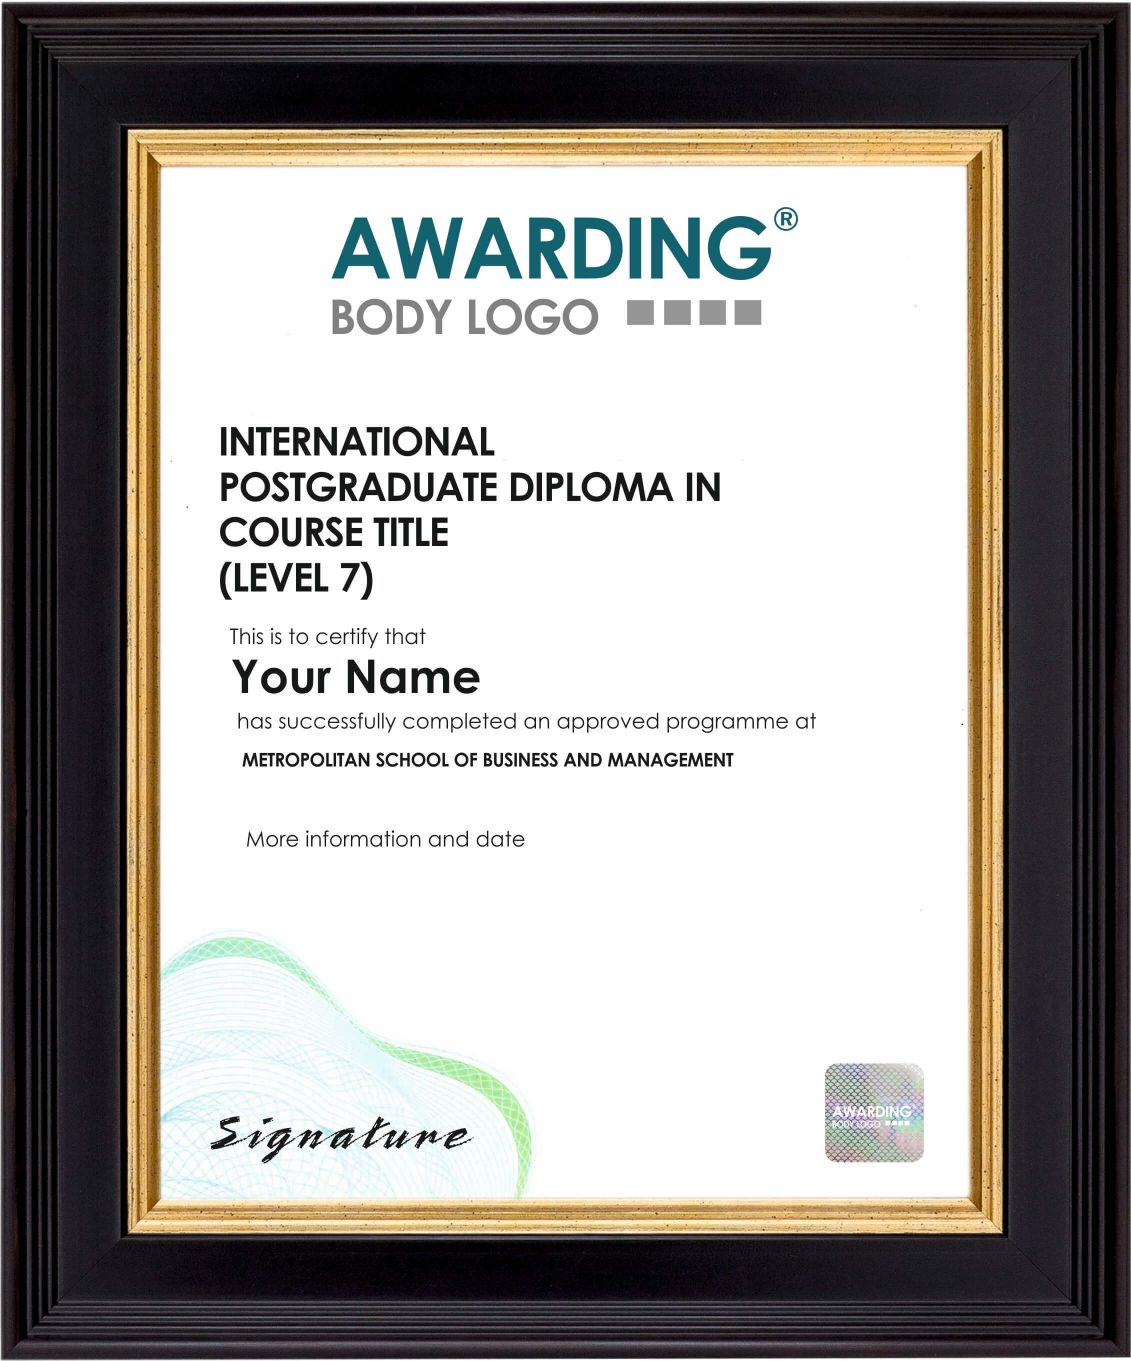 Level 7 IPGD Sample Certificate